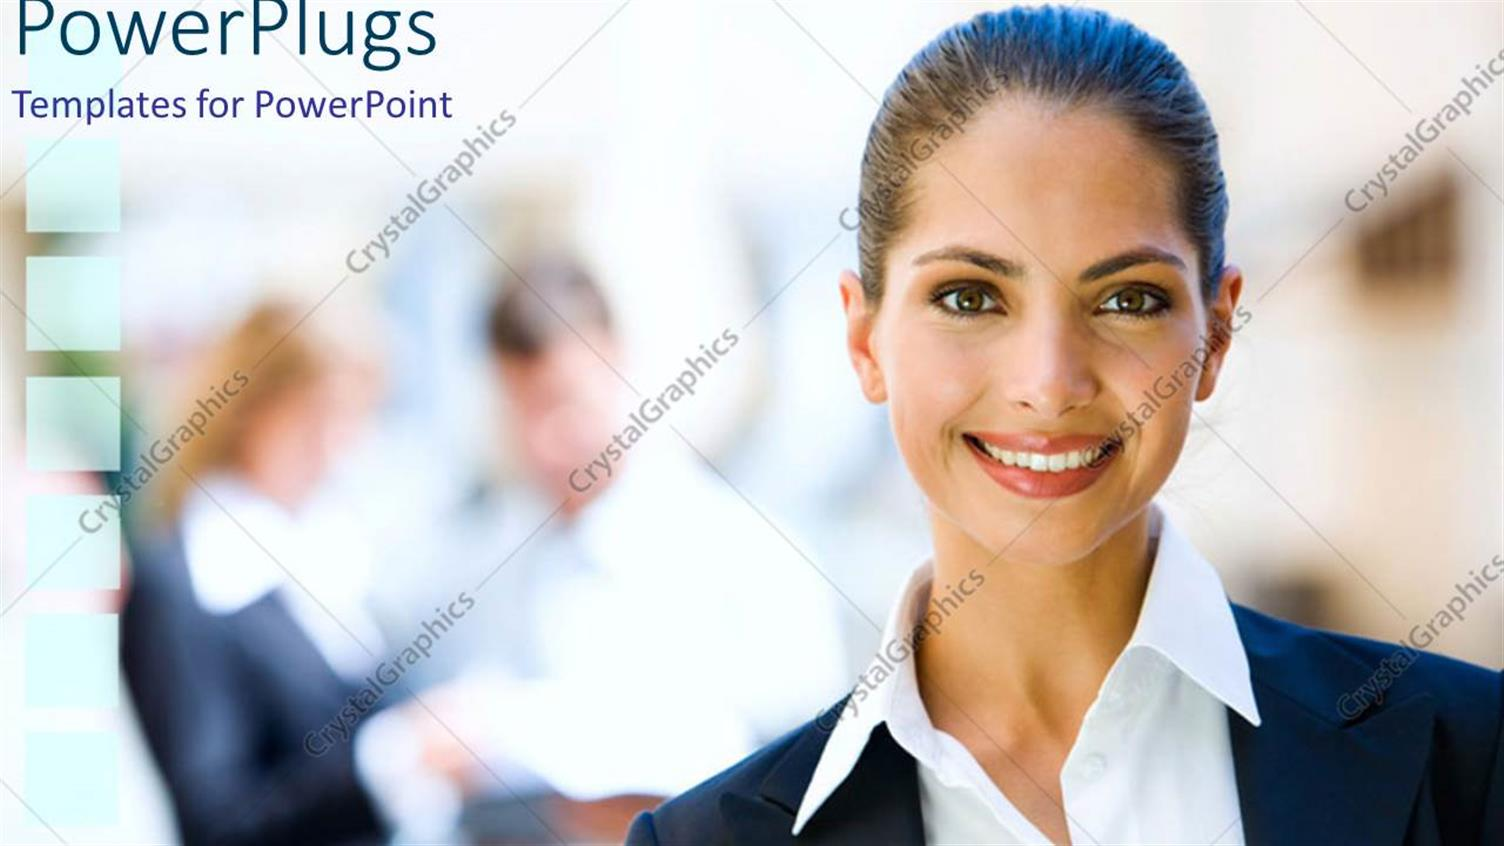 PowerPoint Template Displaying Pretty Cooperate Dressed Lady Smiling on a Blurry Background